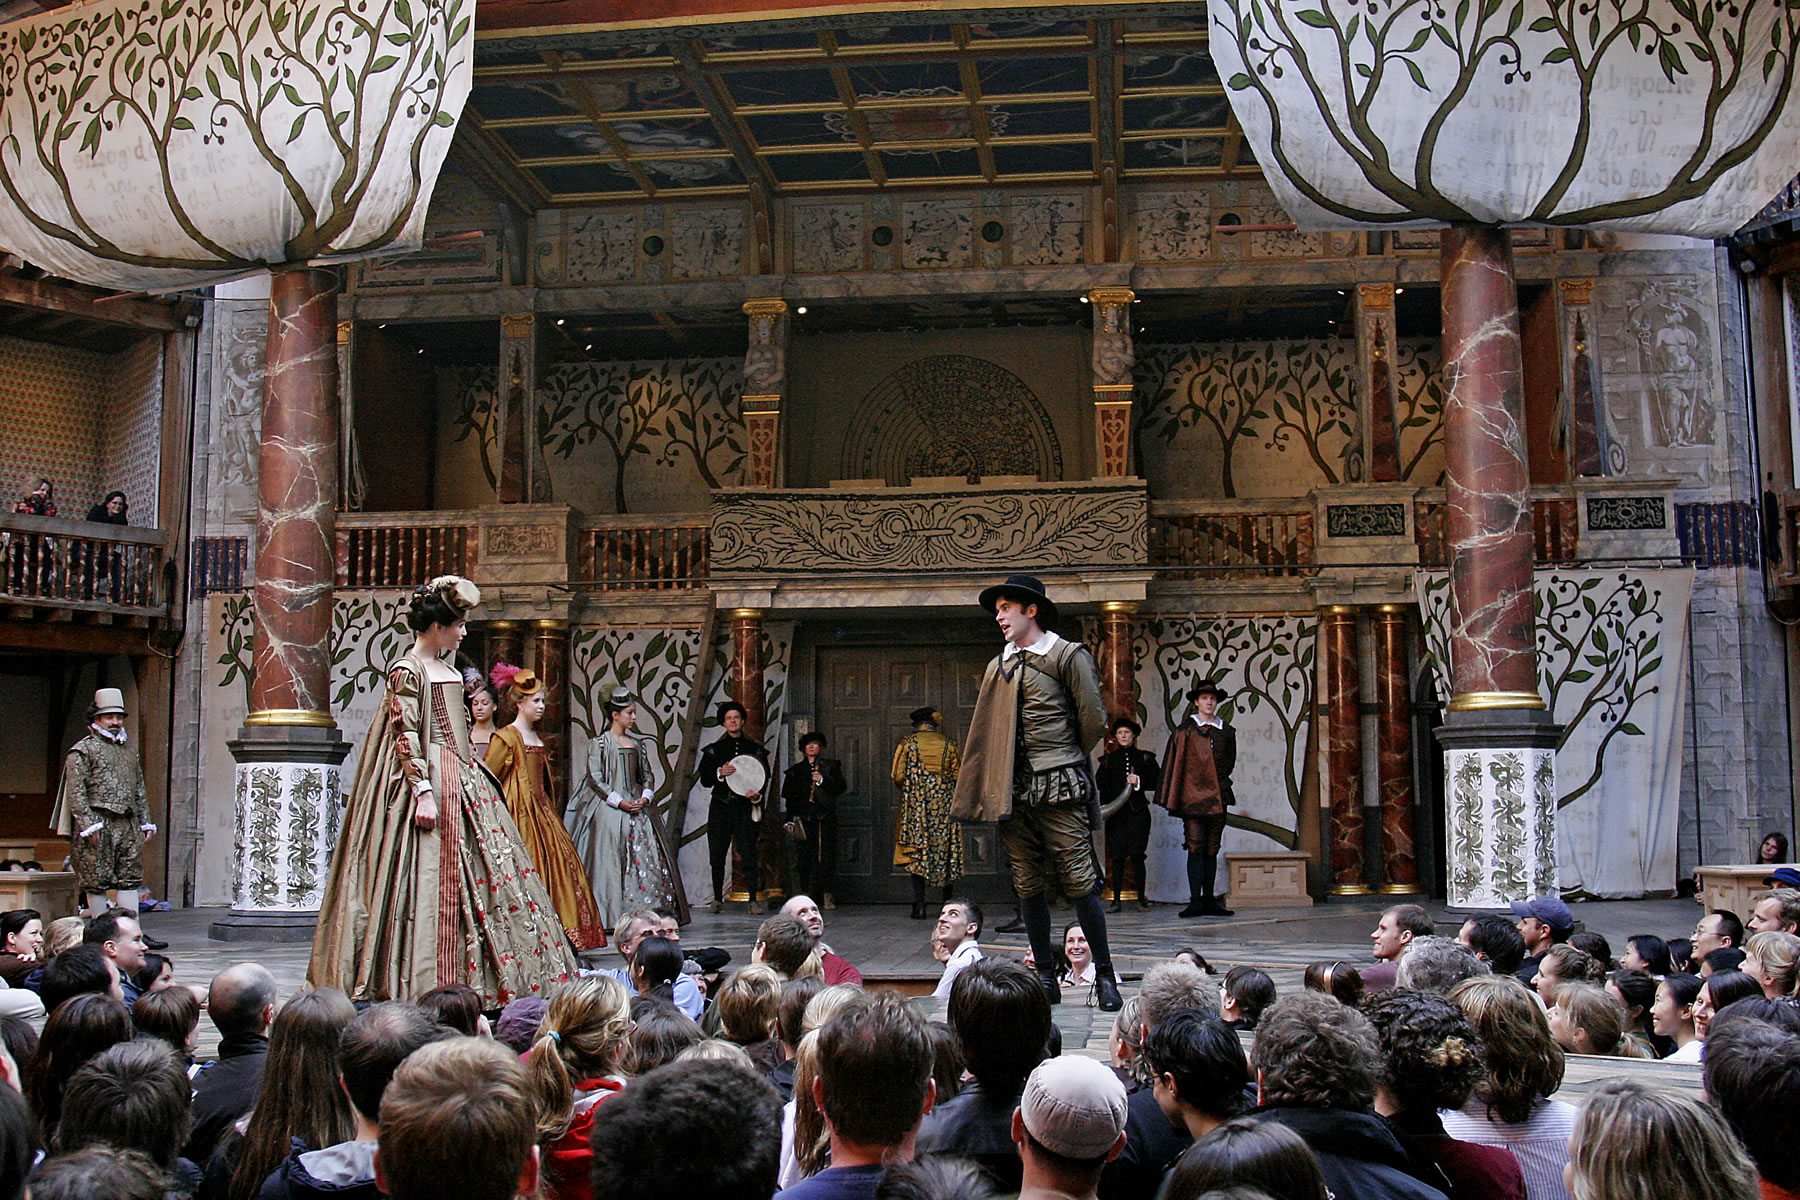 """elizabethan theater Types of elizabethan theatresa brief history 1576 – 1678 """"elizabethan theatre""""is a general term covering the plays written and performed publicly in england during the reign of queen elizabeth i (1558 – 1603) derived from medieval theatre traditions such as mystery."""